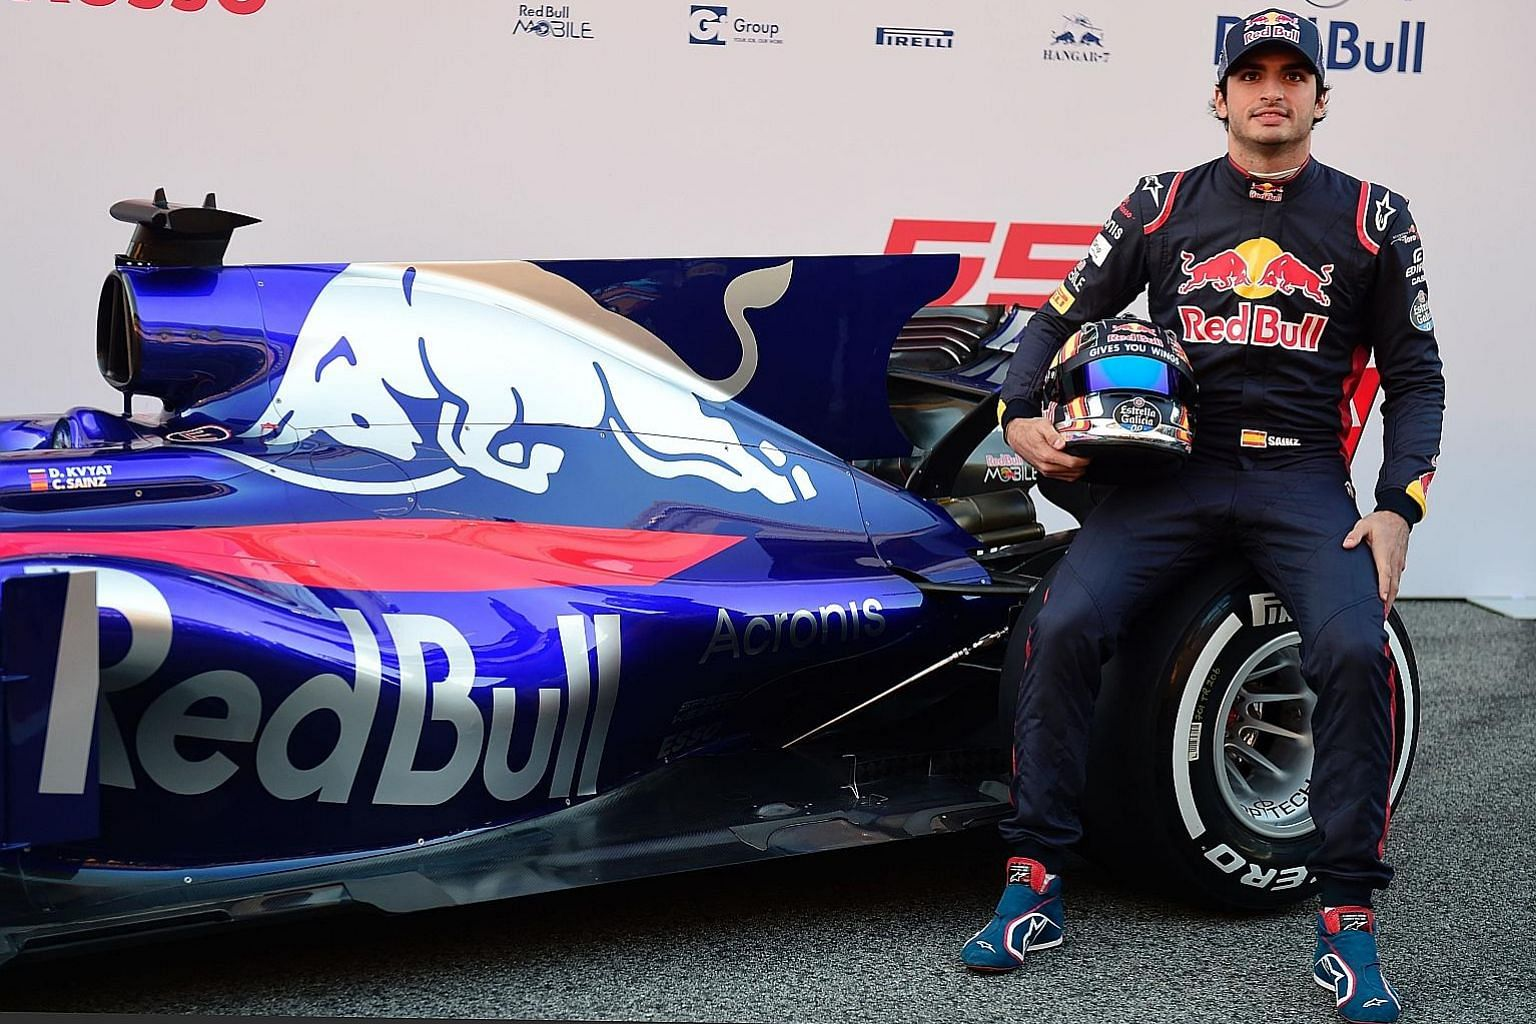 Toro Rosso driver Carlos Sainz with his new STR12 car during the official presentation.